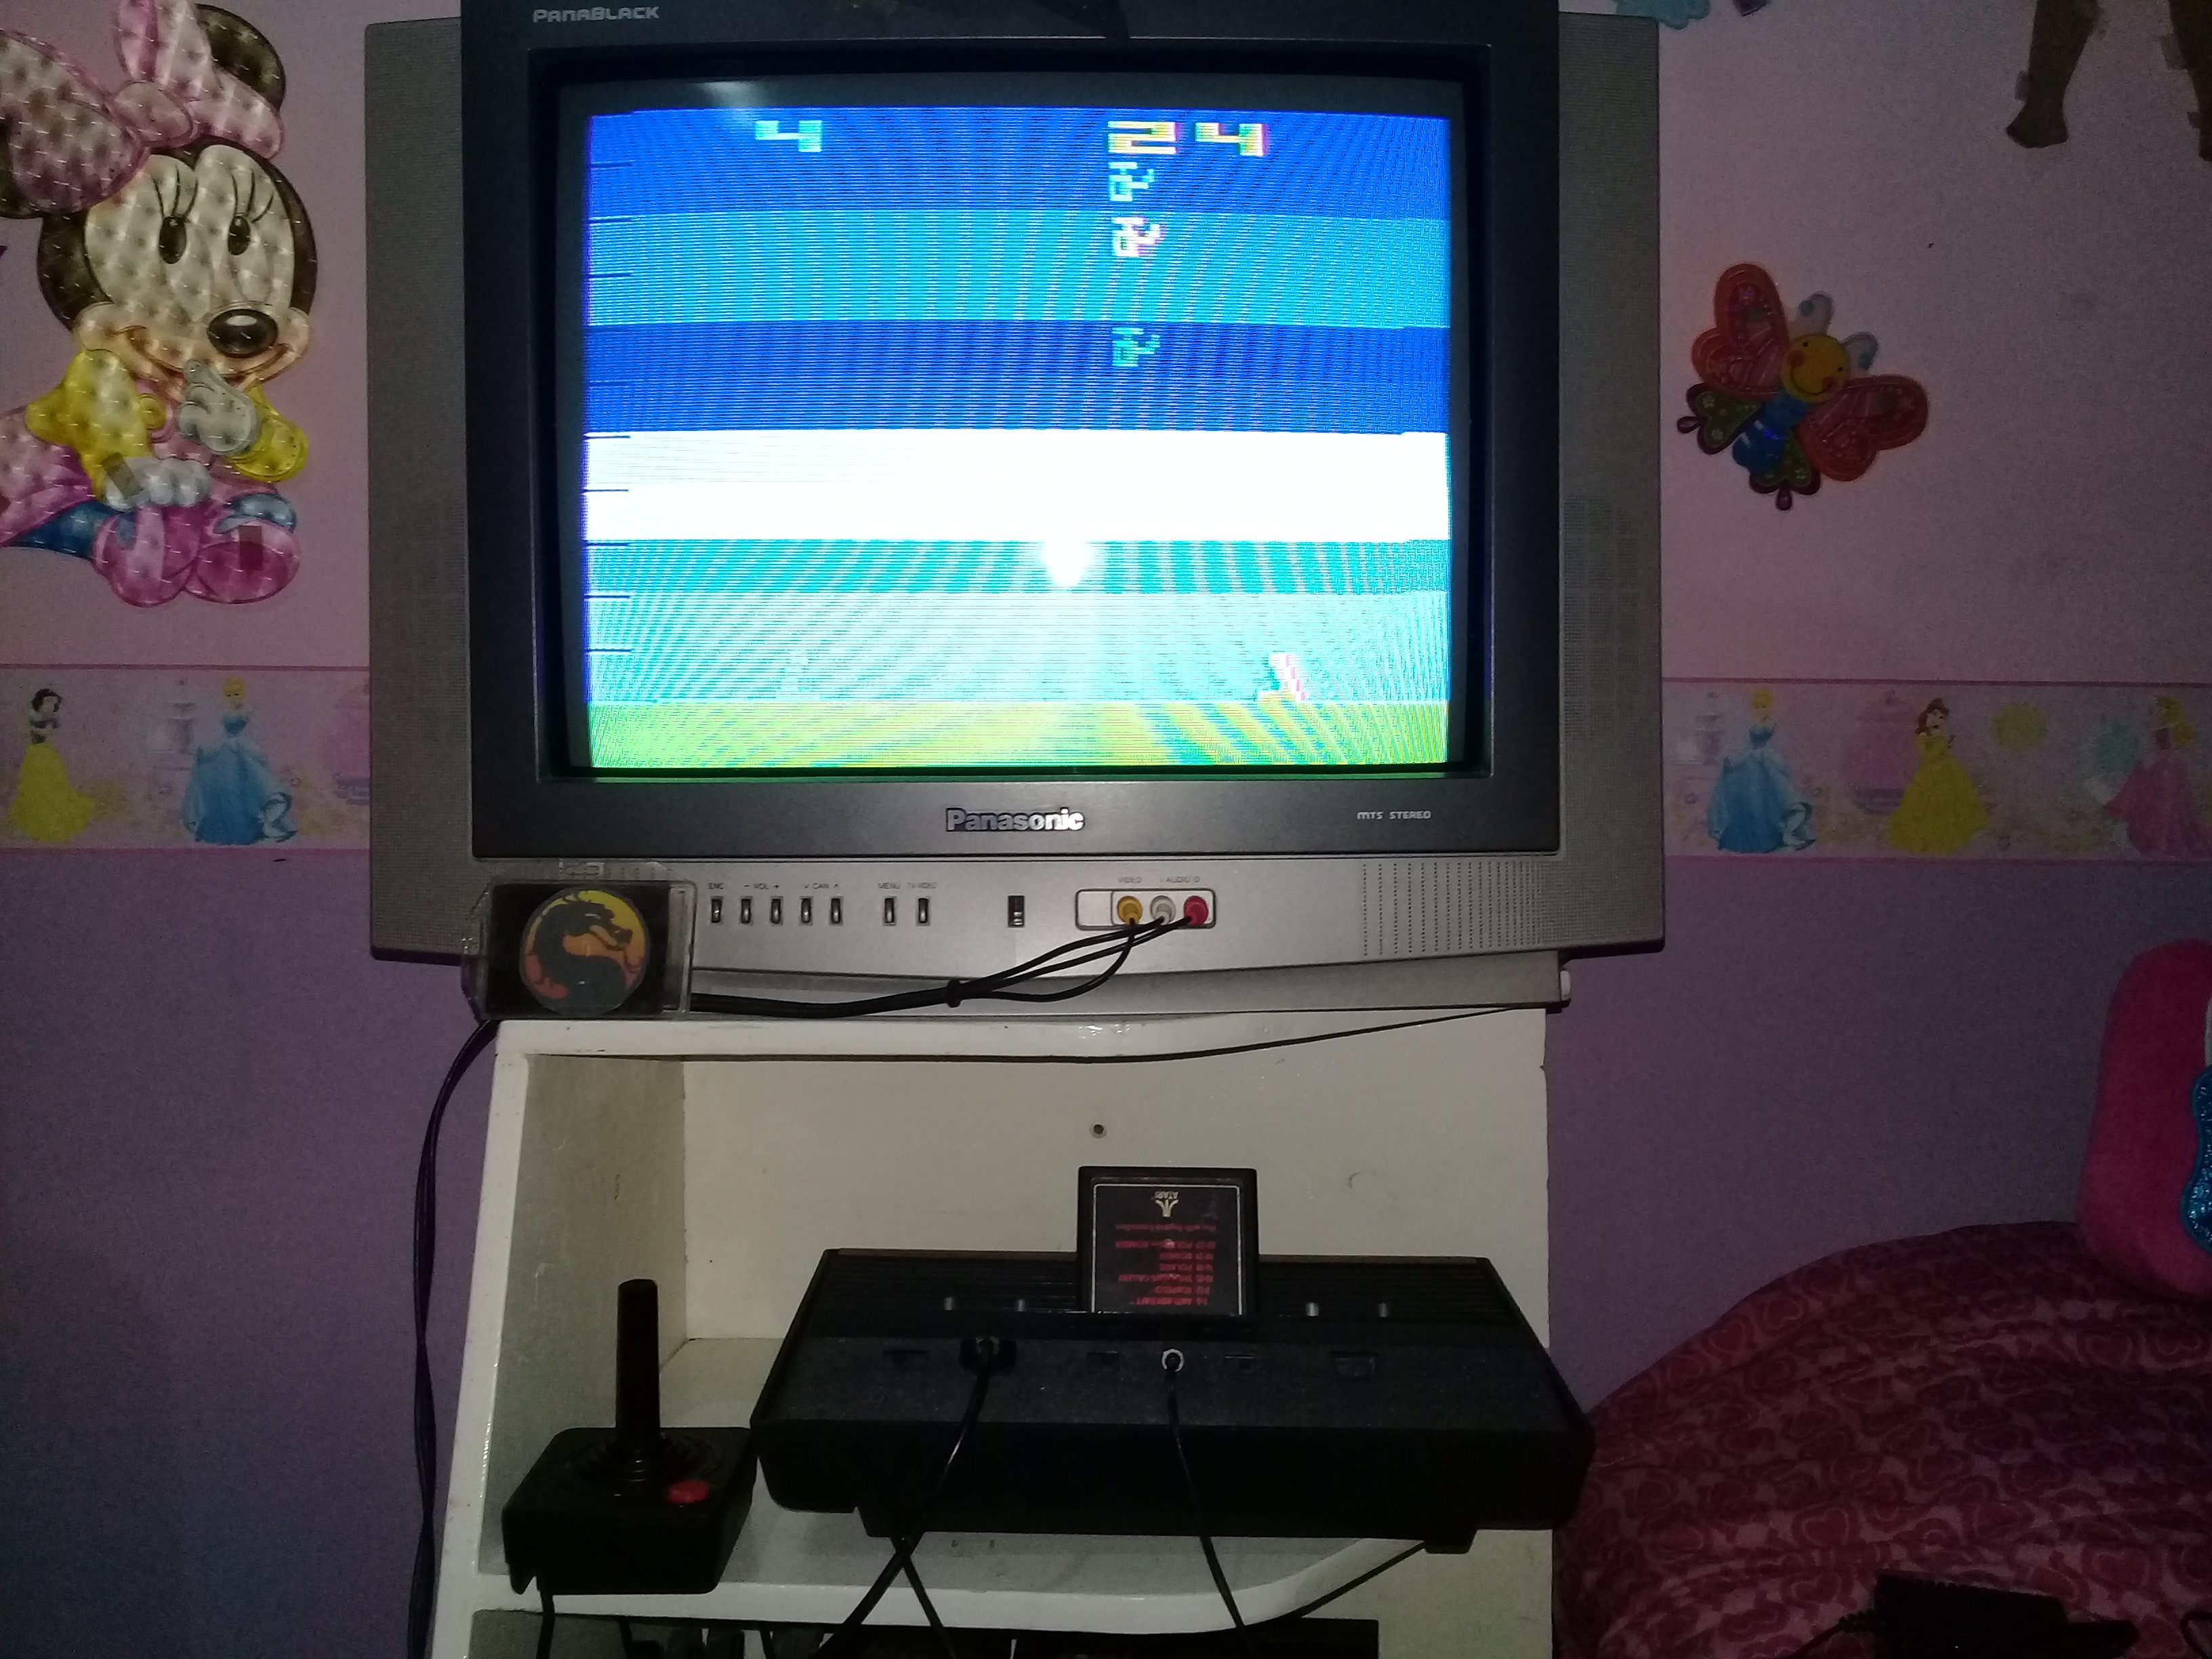 omargeddon: Air-Sea Battle: Game 3 (Atari 2600 Expert/A) 24 points on 2019-12-08 18:19:26